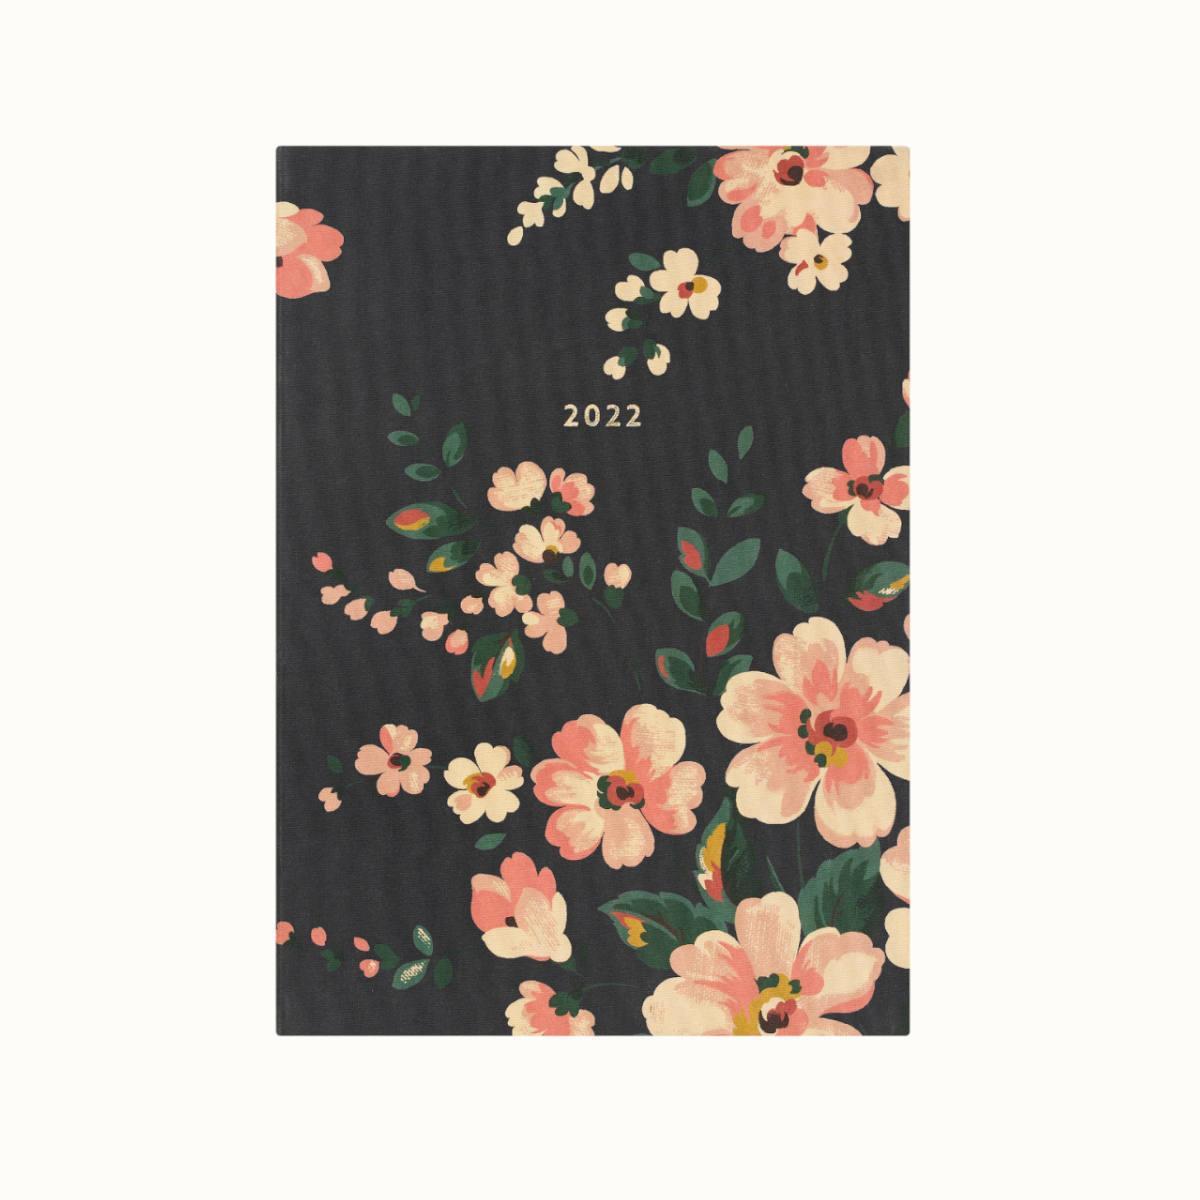 Cath Kidston A5 Linen Dark Floral Weekly 2022 Diary